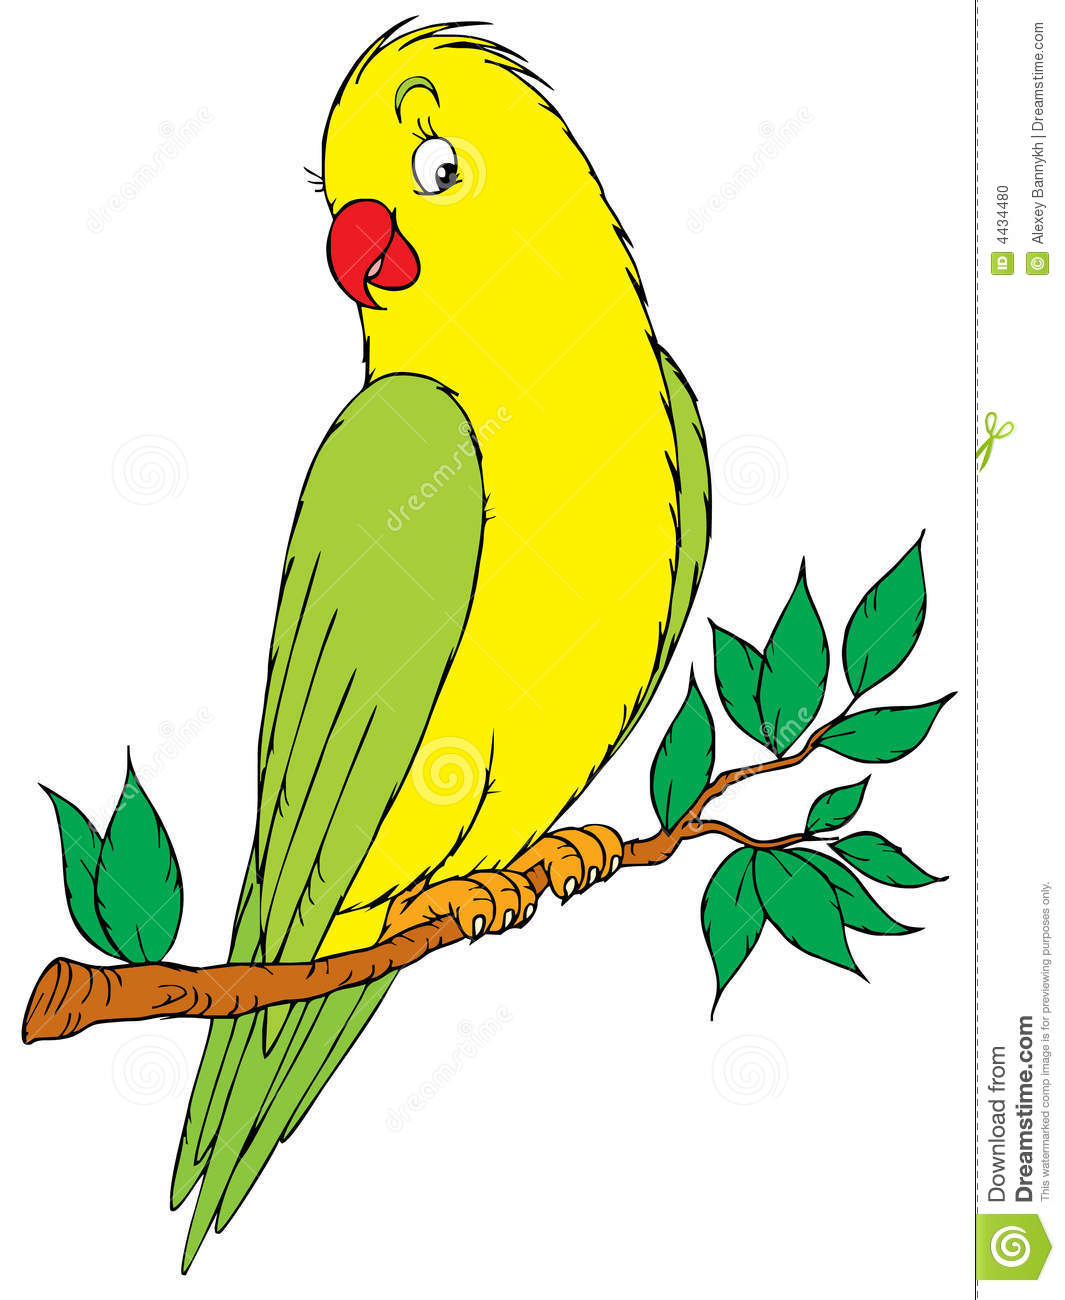 Parrot Black And White Clipart.